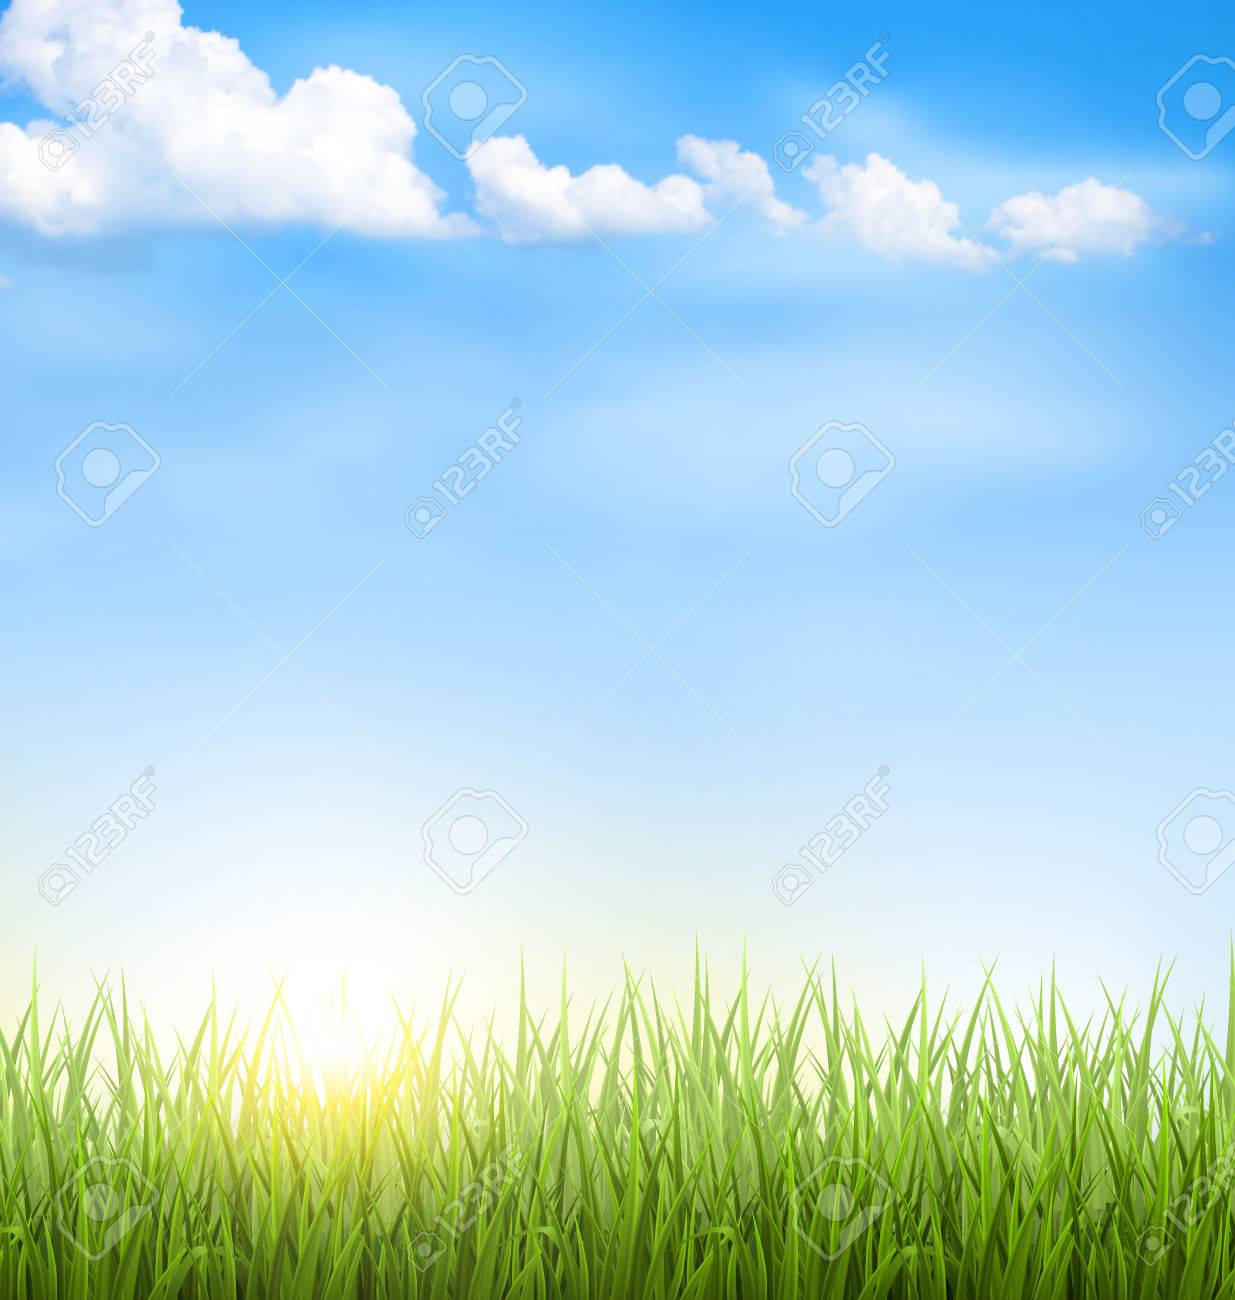 Green grass lawn with clouds and sun on blue sky - 41037760